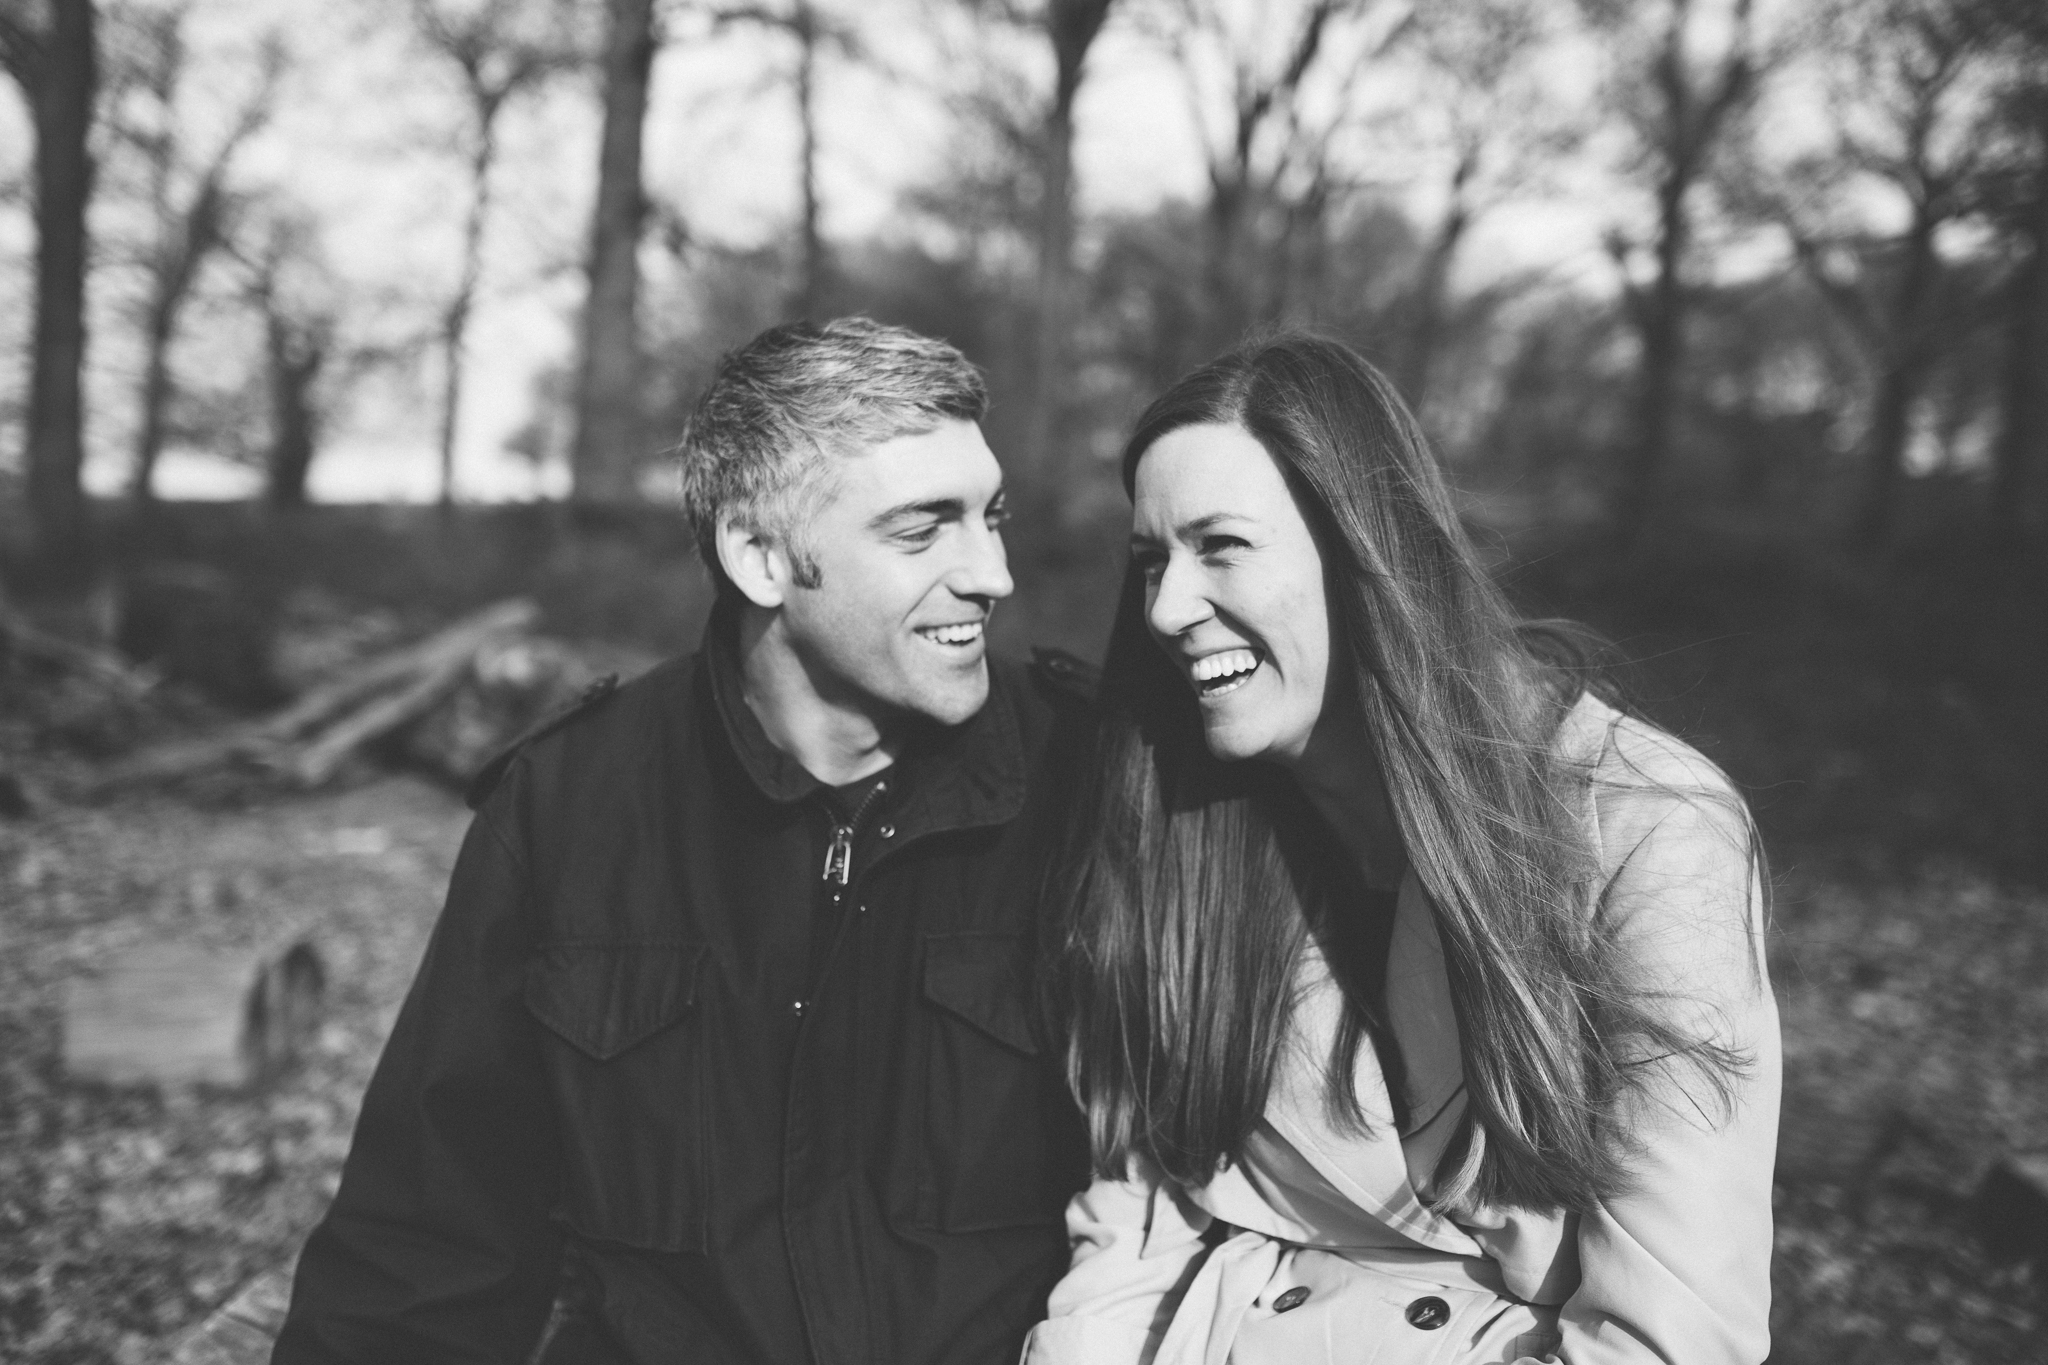 Richmond Park Engagement Photography Wedding Photographer Surrey (6 of 54).jpg